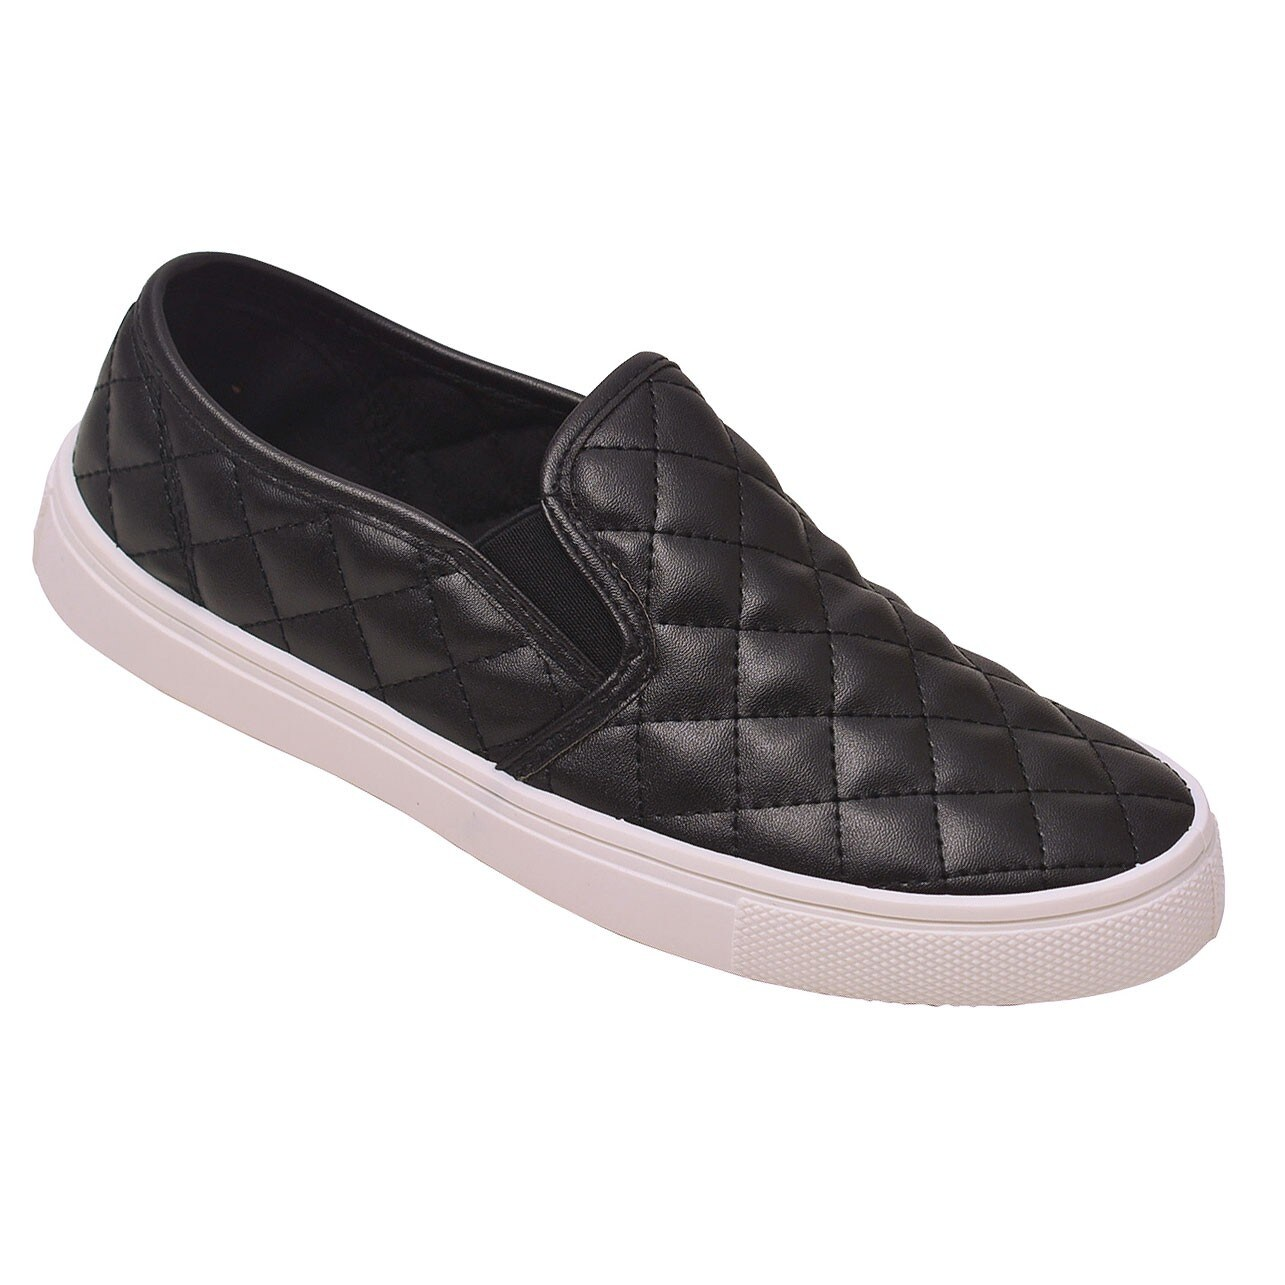 db2dd2d9957 Shop Weeboo Adult Black Quilted Stitch Pattern Laceless Sneakers - Free  Shipping On Orders Over  45 - Overstock - 23540168